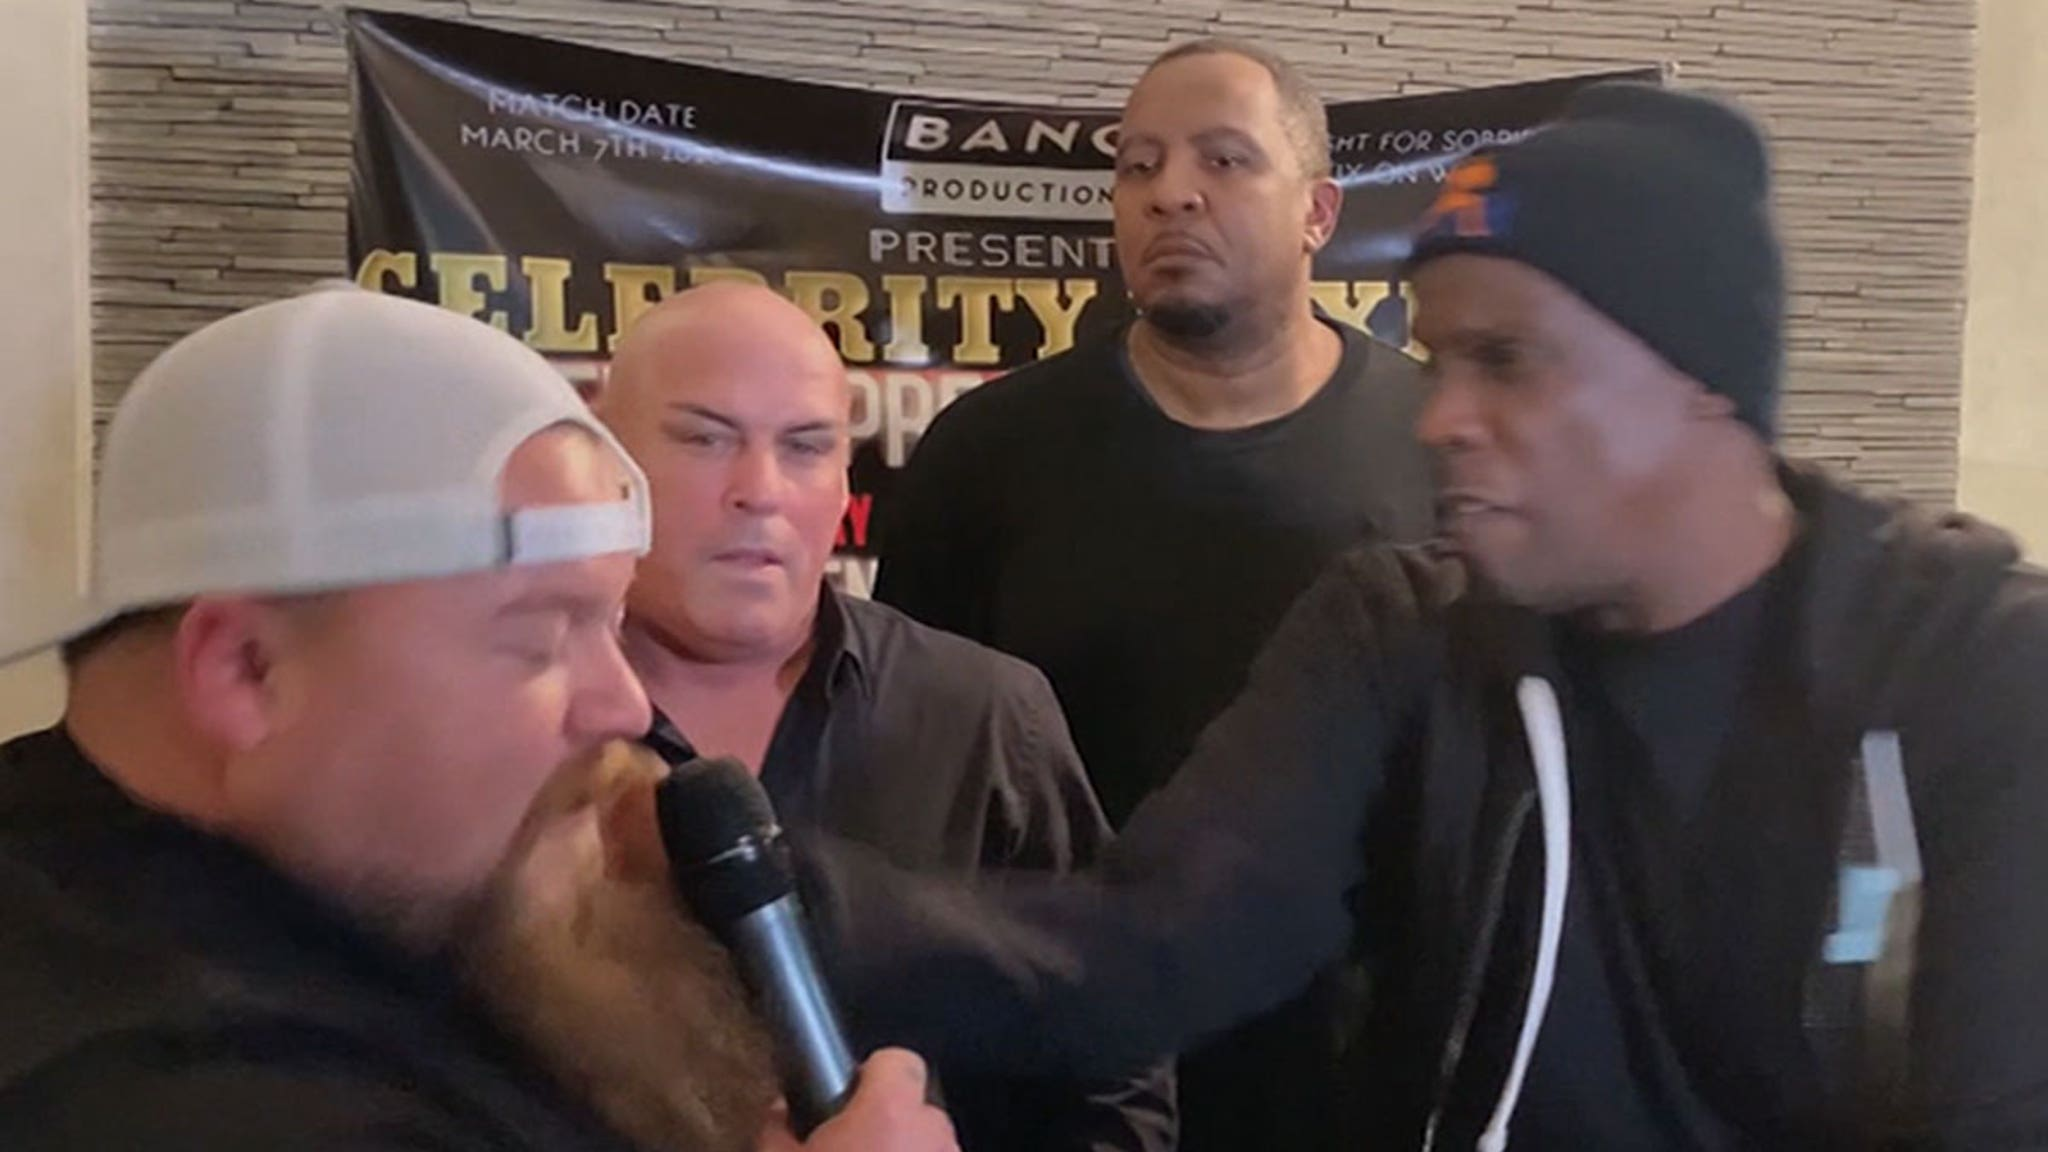 Doc Gooden Attacks Opponent Catfish Cooley At Celeb Boxing Event